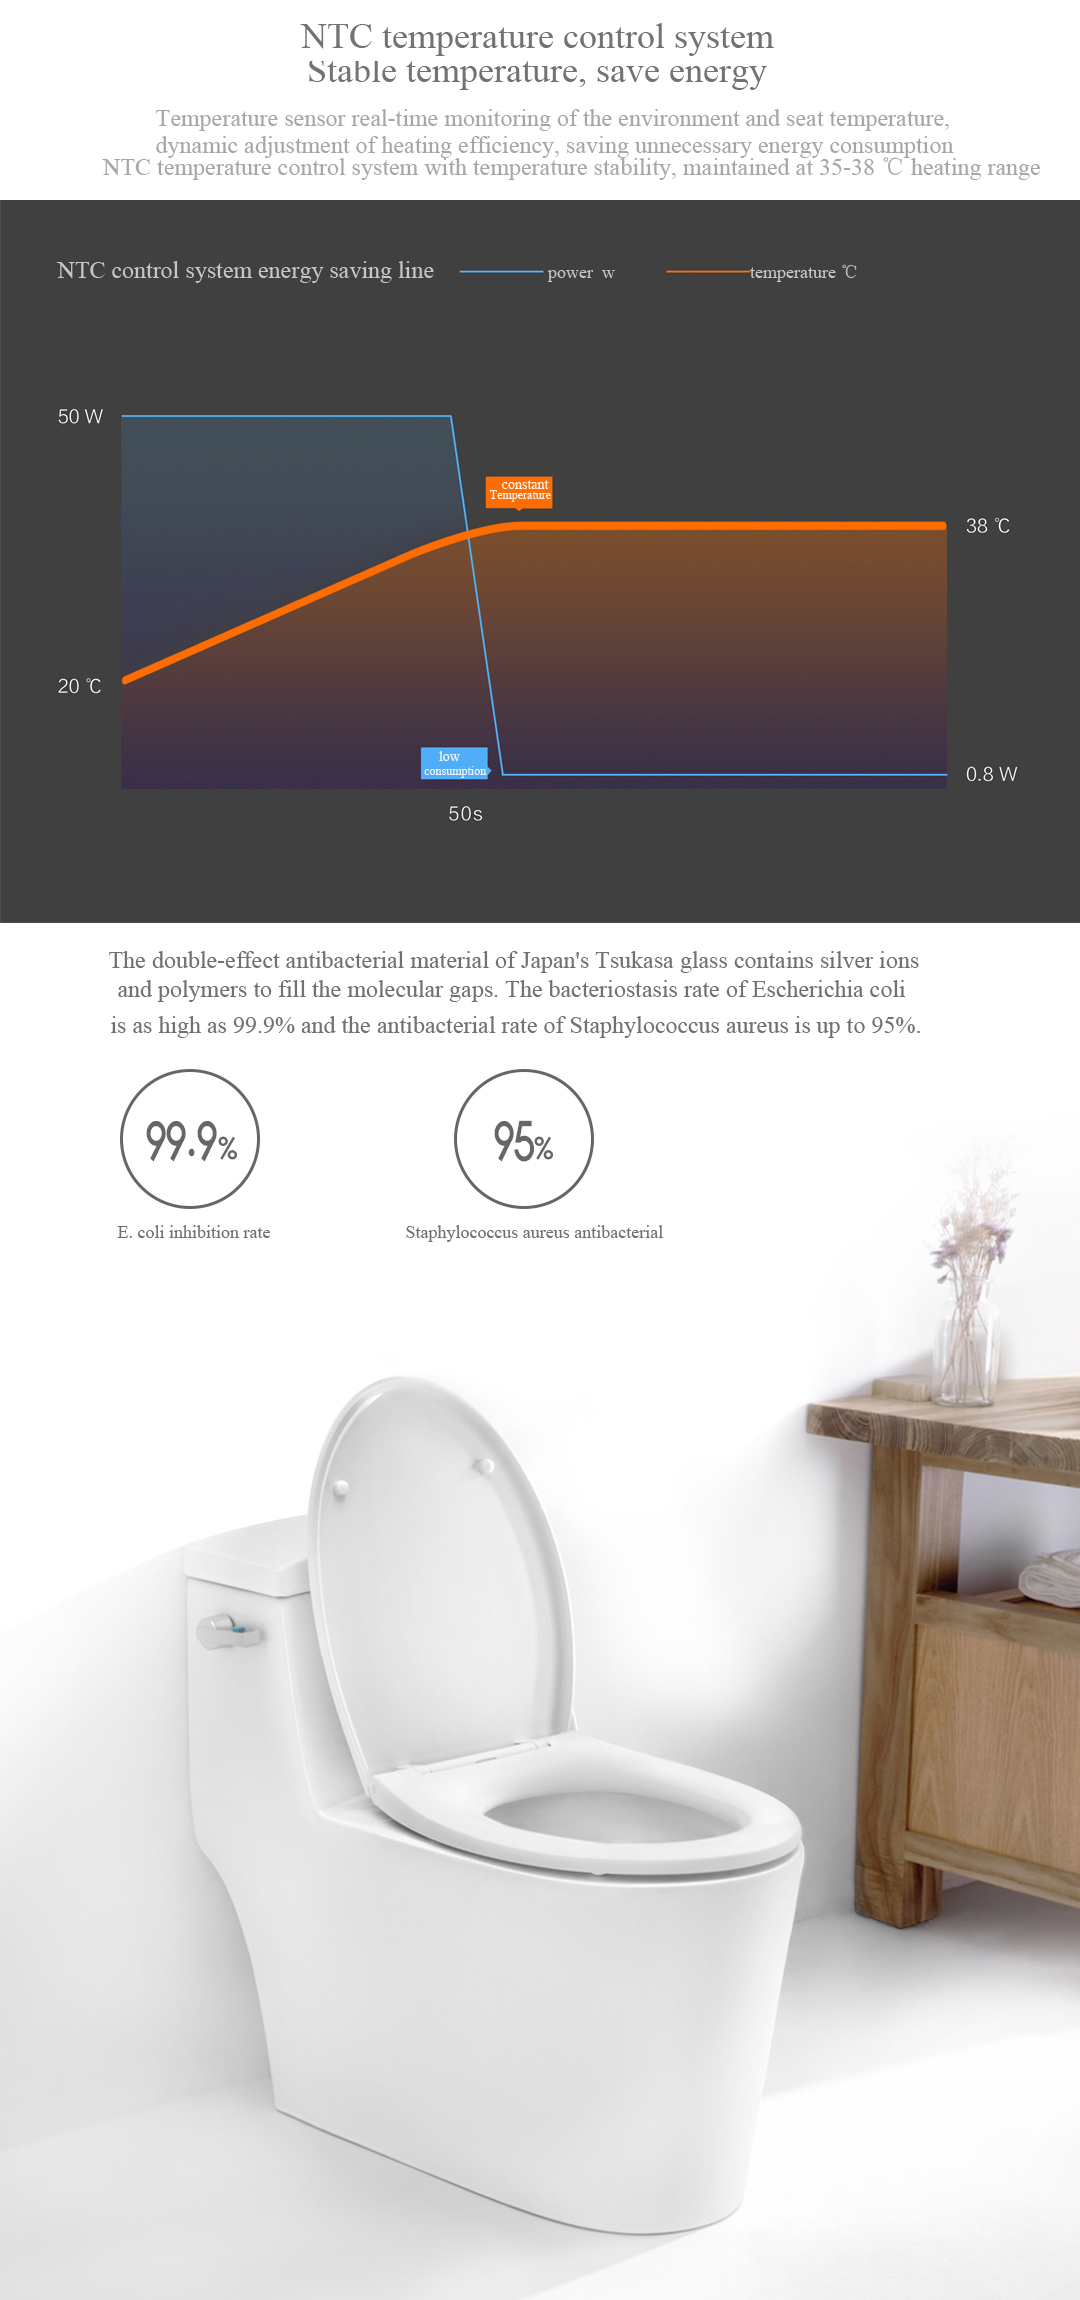 Original xiaomi warm toilet seat at banggood original xiaomi warm toilet seat fandeluxe Choice Image